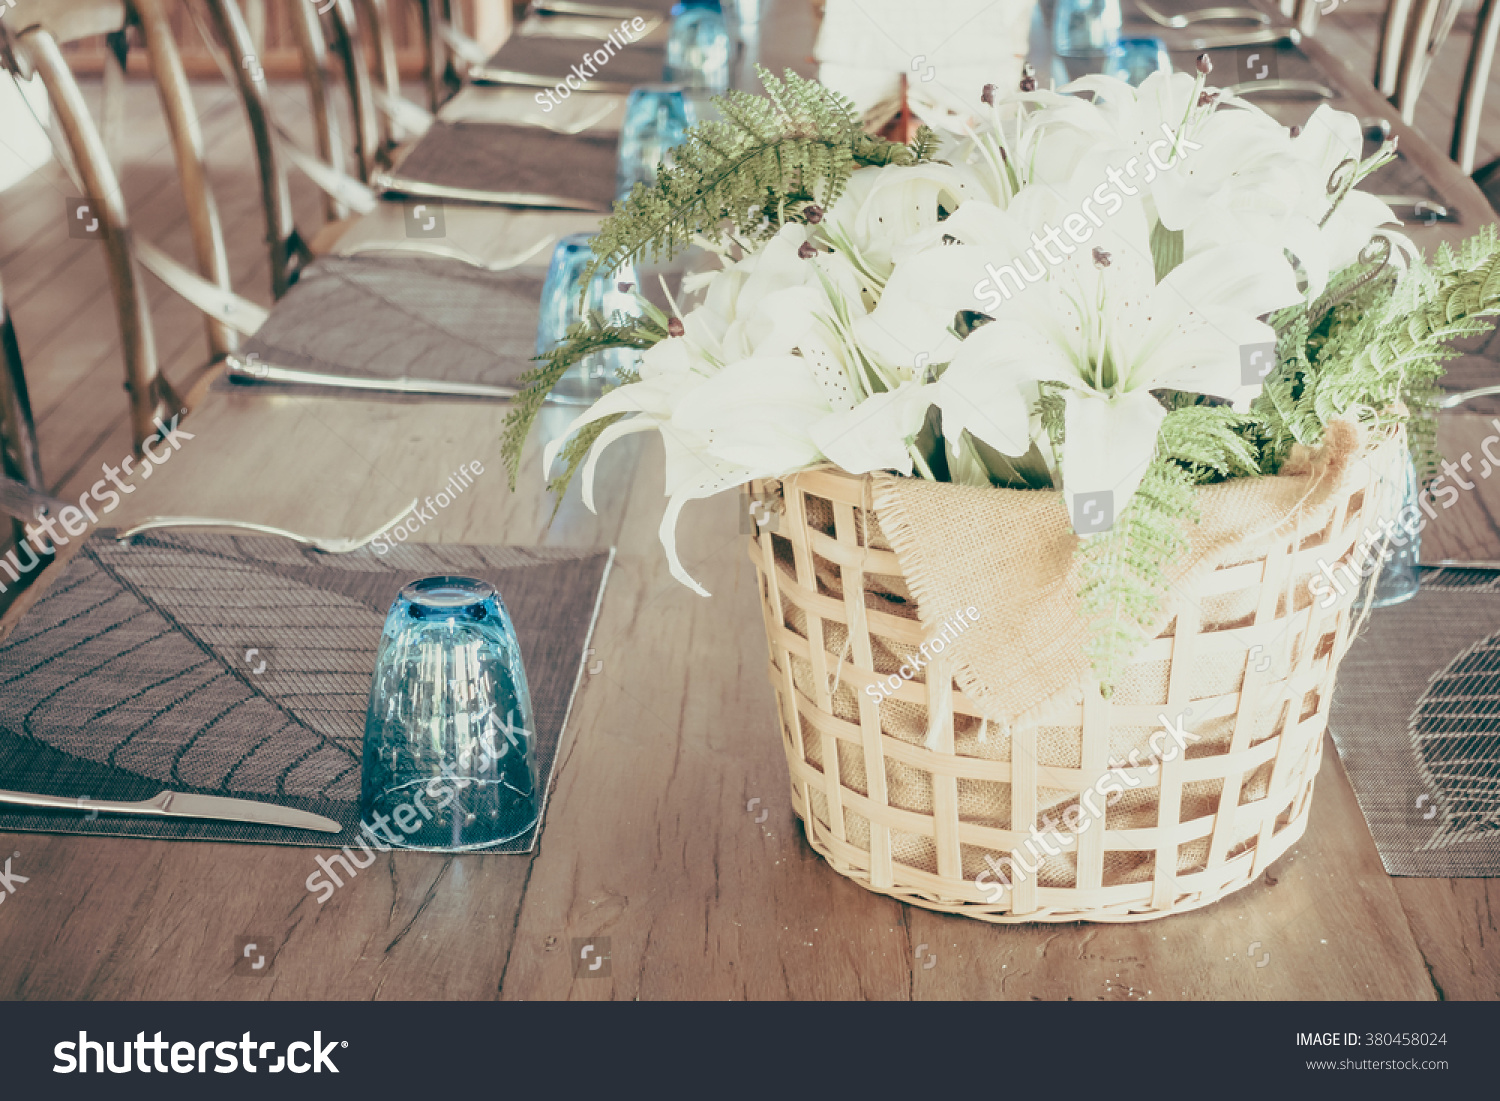 White Flower In Vase Decoration On Dining Table Vintage Filter Stock Photo